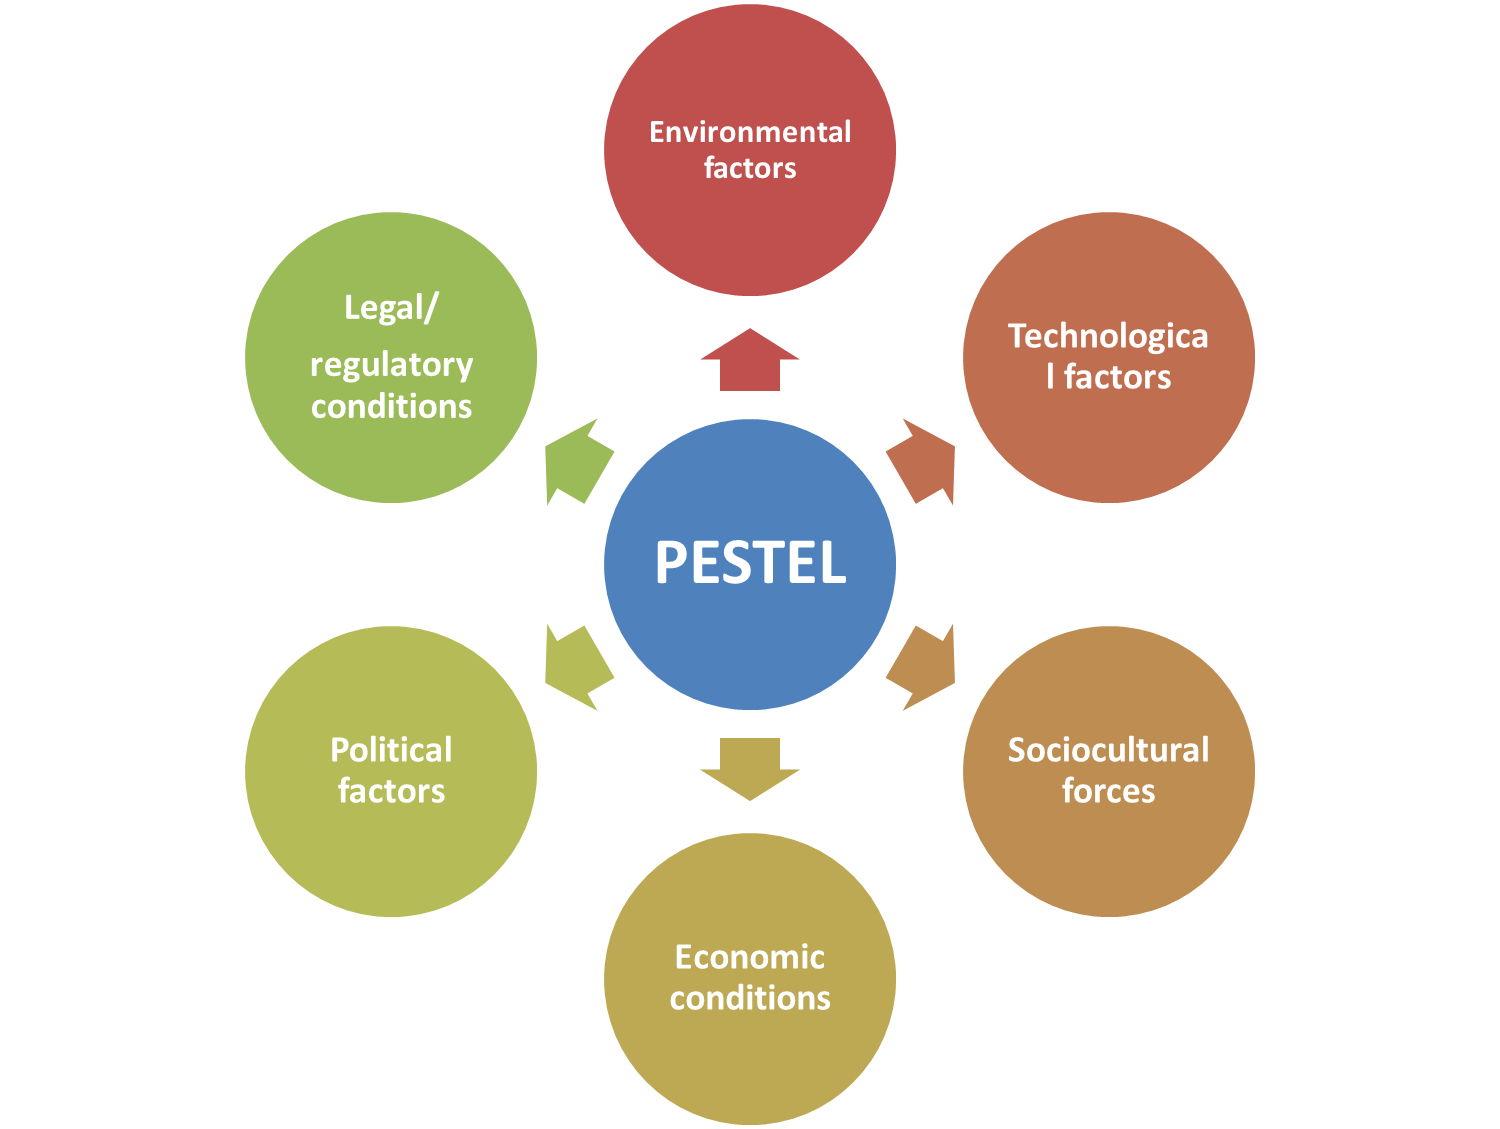 Pestle analysis and the bigger environment